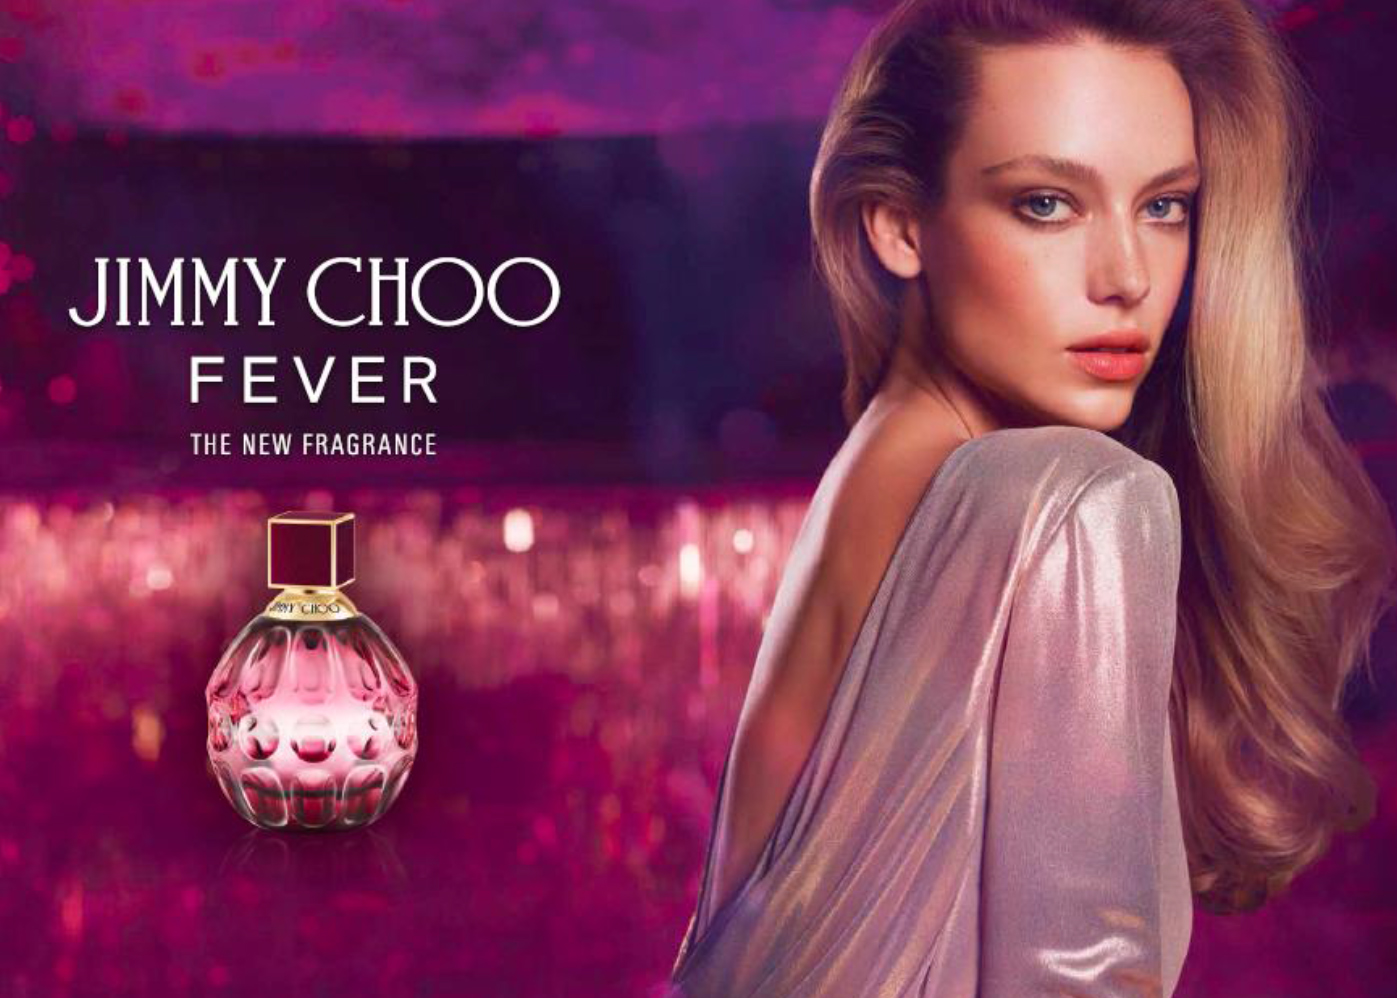 JIMMY CHOO2.jpg